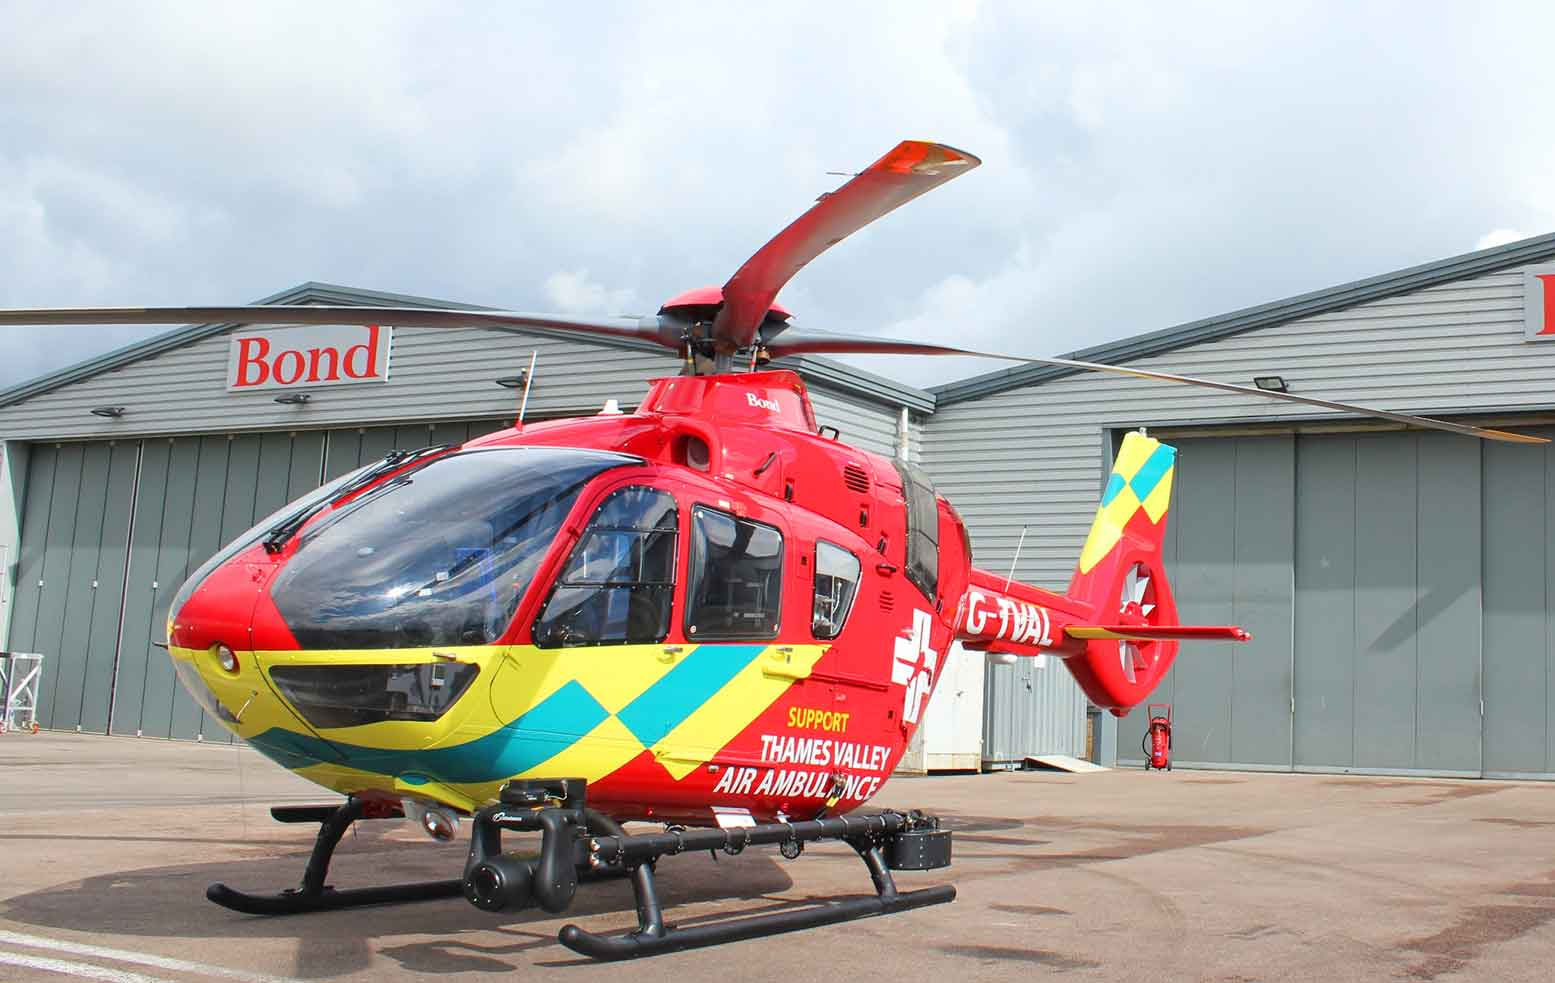 helicopter charity with Thames Valley Air Ambulance To Get Uks First H135 Helicopter on A See Hangar 7 Red Bull 2 1 likewise Portuguese Air Force Repaint France Vfrs Alouette Iii besides The Court Queen Kate Diana S Old Apartment Royal Trio Annex Rooms Princes Grew Charity Business Nerve Centre besides Princess Diana S Childhood Home Althorp Opens Overnight Guests further Tony Robbins.